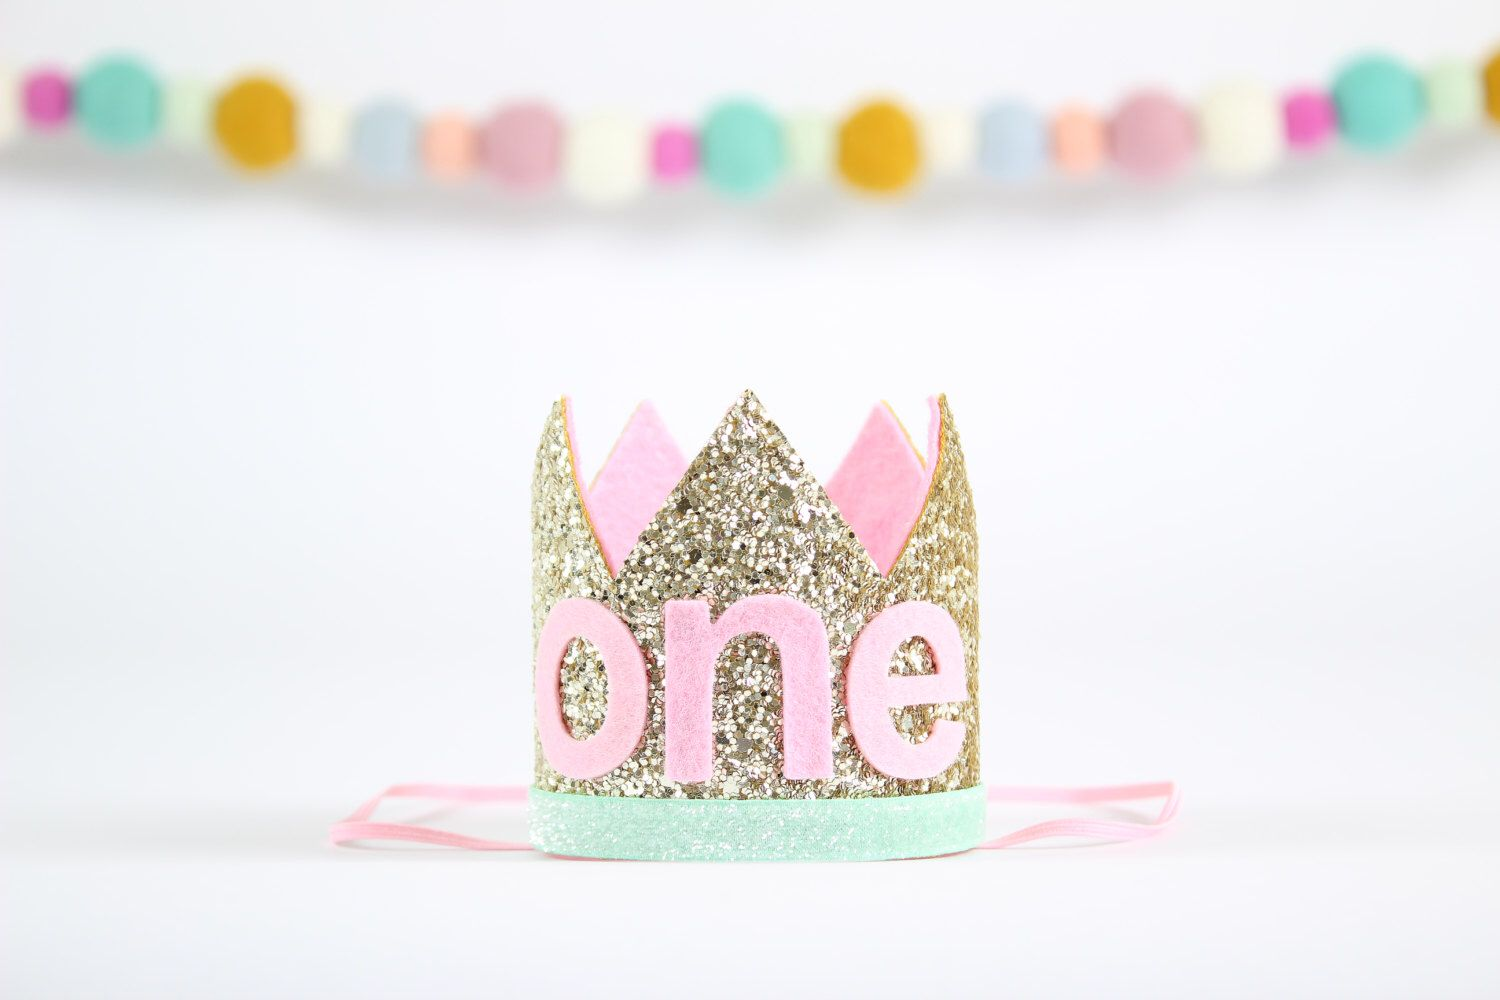 ONE Birthday Party Hat | First Birthday Smash Cake Glitter Crown | Baby Girl 1st Birthday Hat | Pale Gold + Mint + Pink ONE by SprinklePartyCo on Etsy https://www.etsy.com/listing/473563142/one-birthday-party-hat-first-birthday